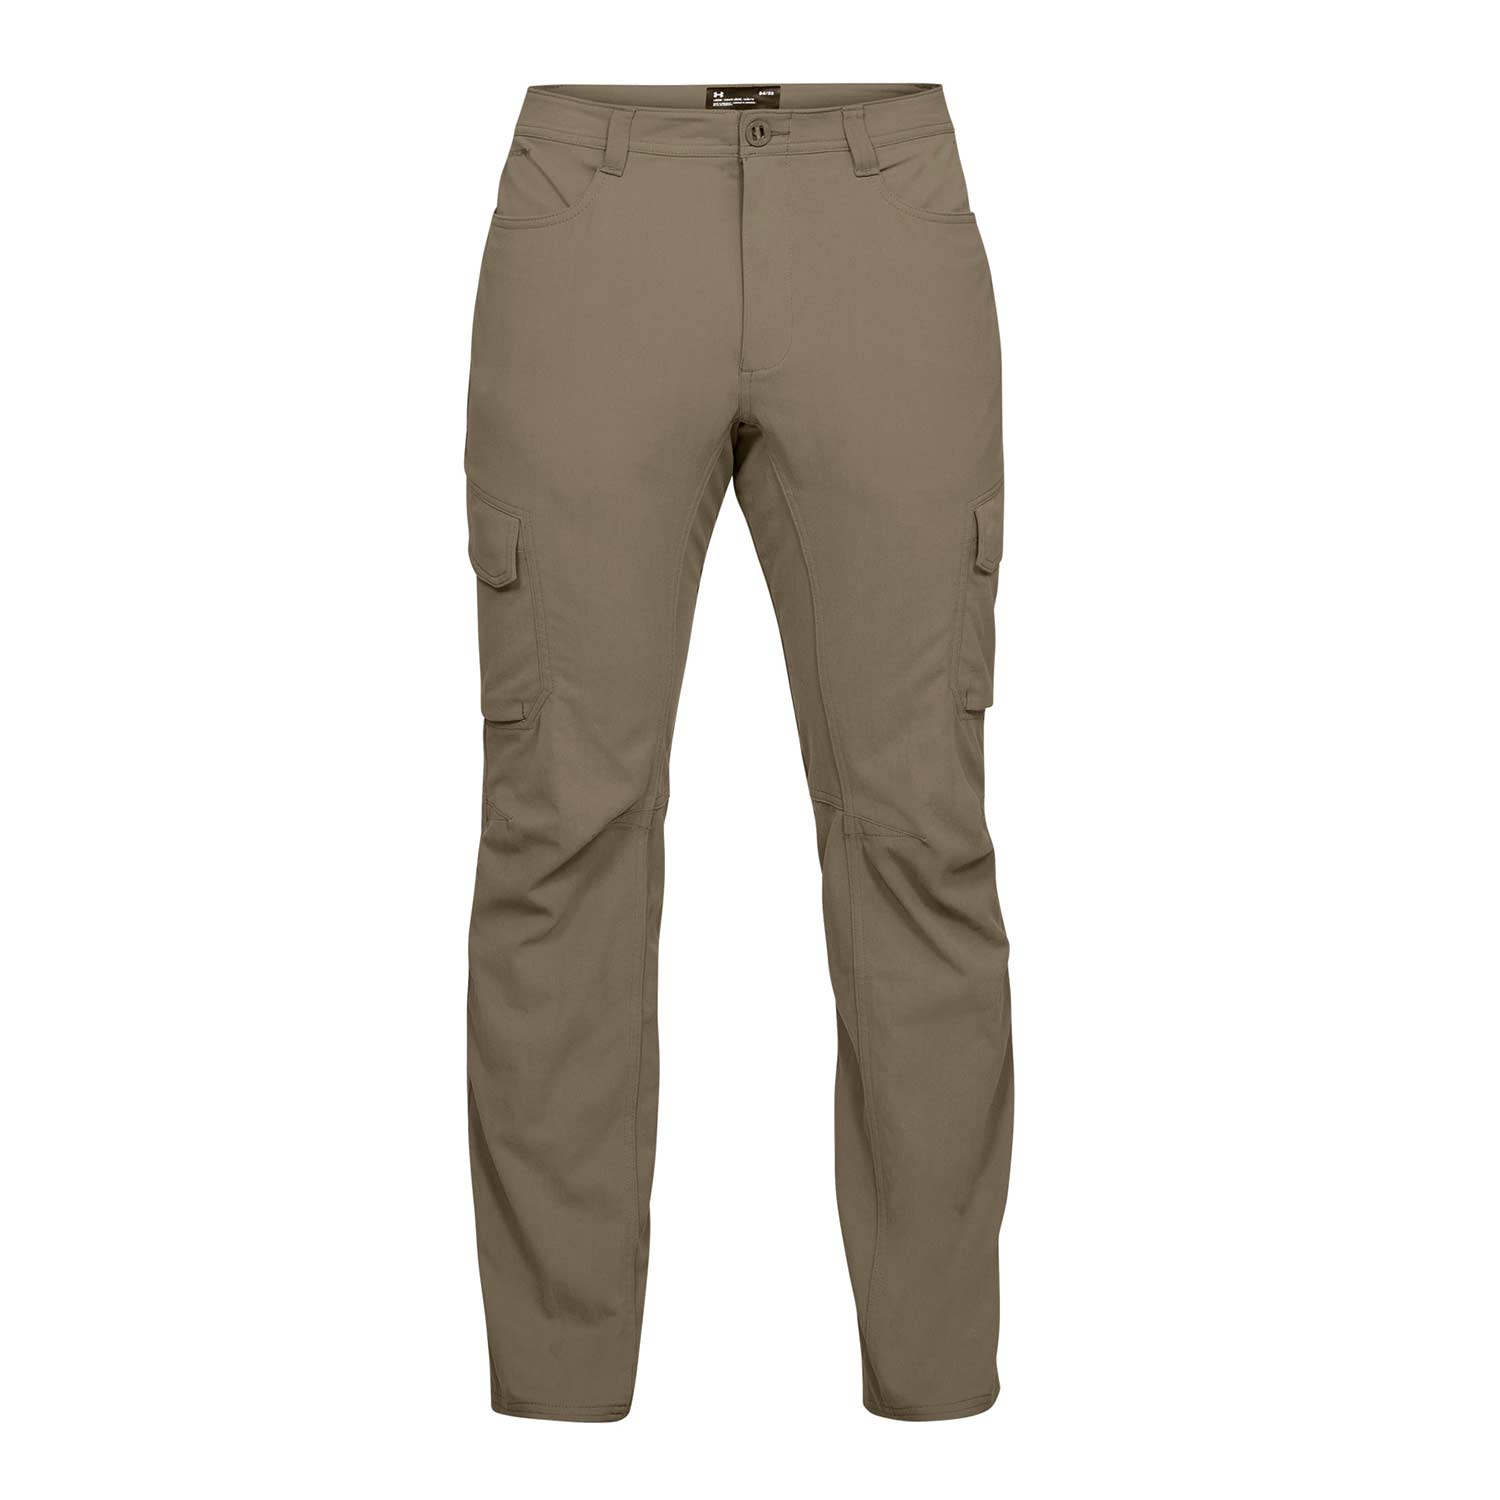 Under Armour Guardian Tactical Cargo Pants